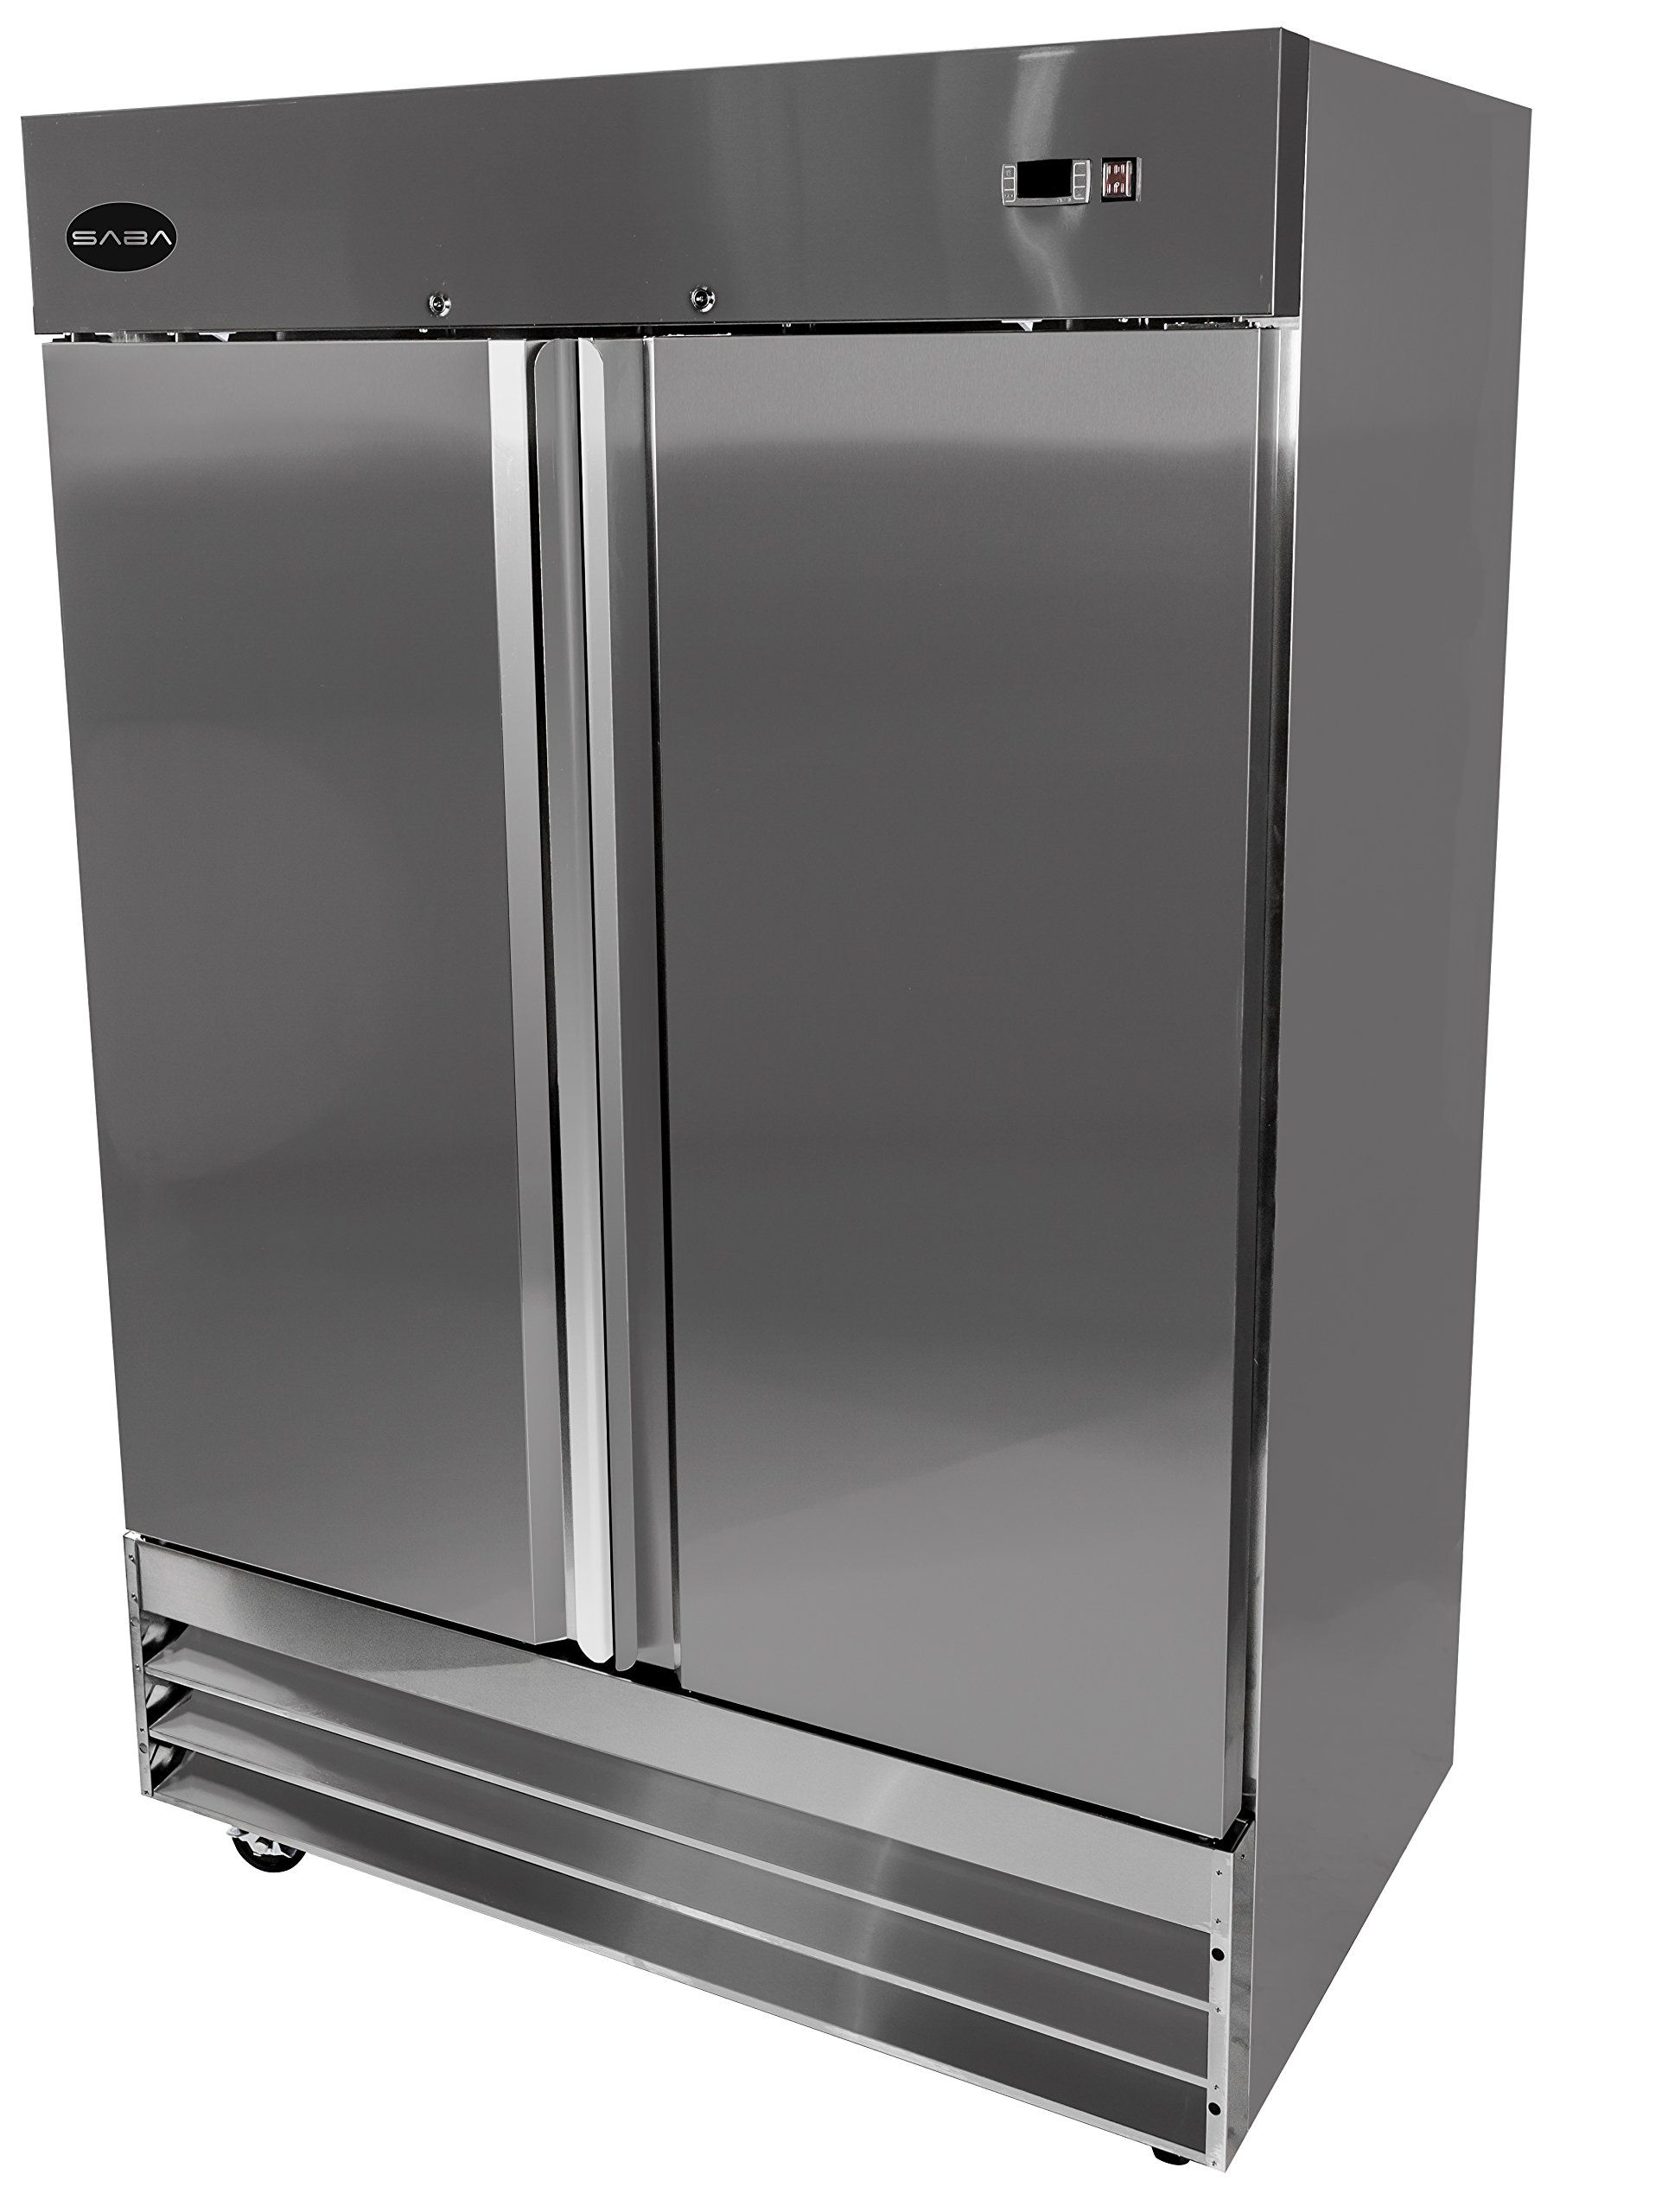 Heavy Duty Commercial Stainless Steel Reach In Refrigerator (54 Two Solid